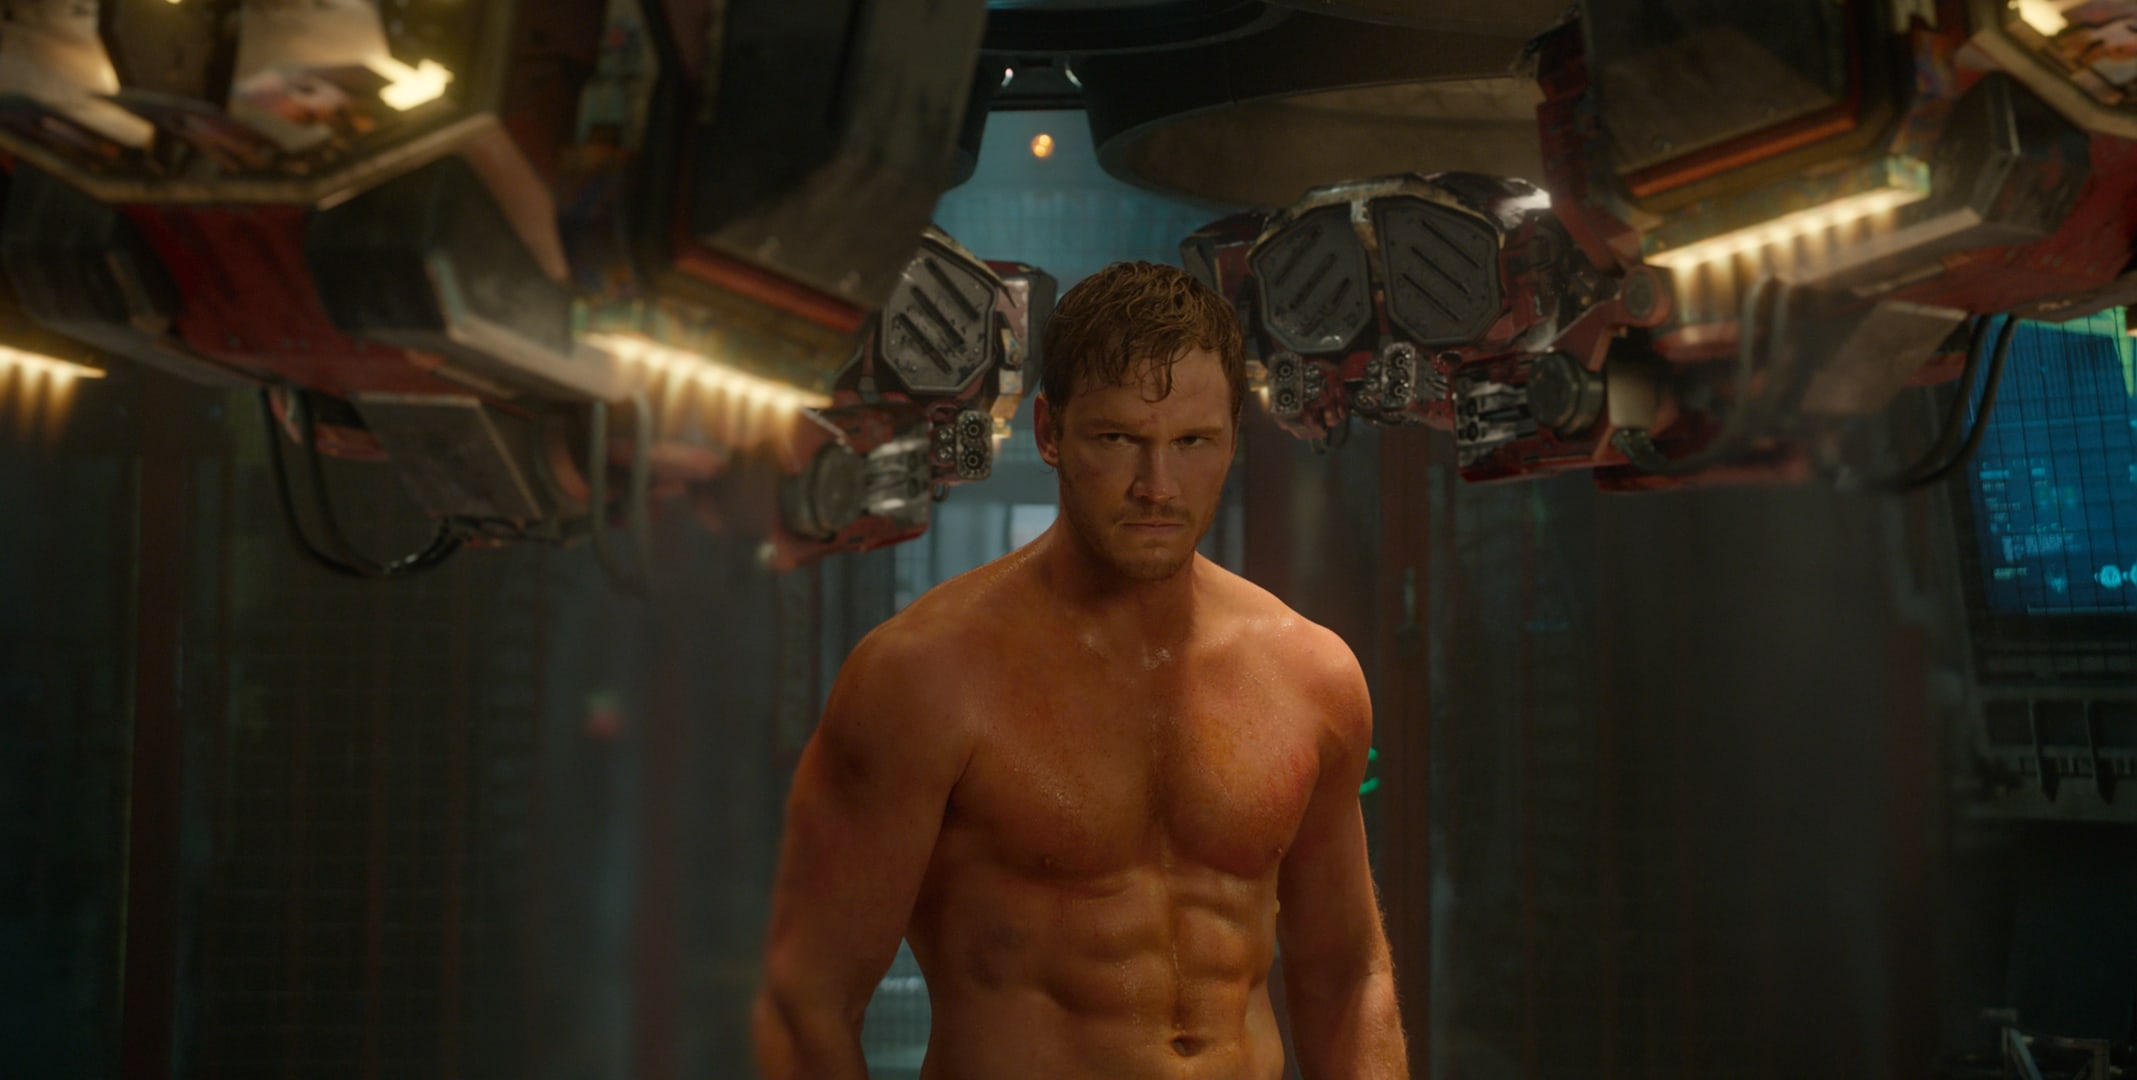 Chris Pratt Shirtless as Peter Quill (Starlord) in the movie Guardians of the Galaxy